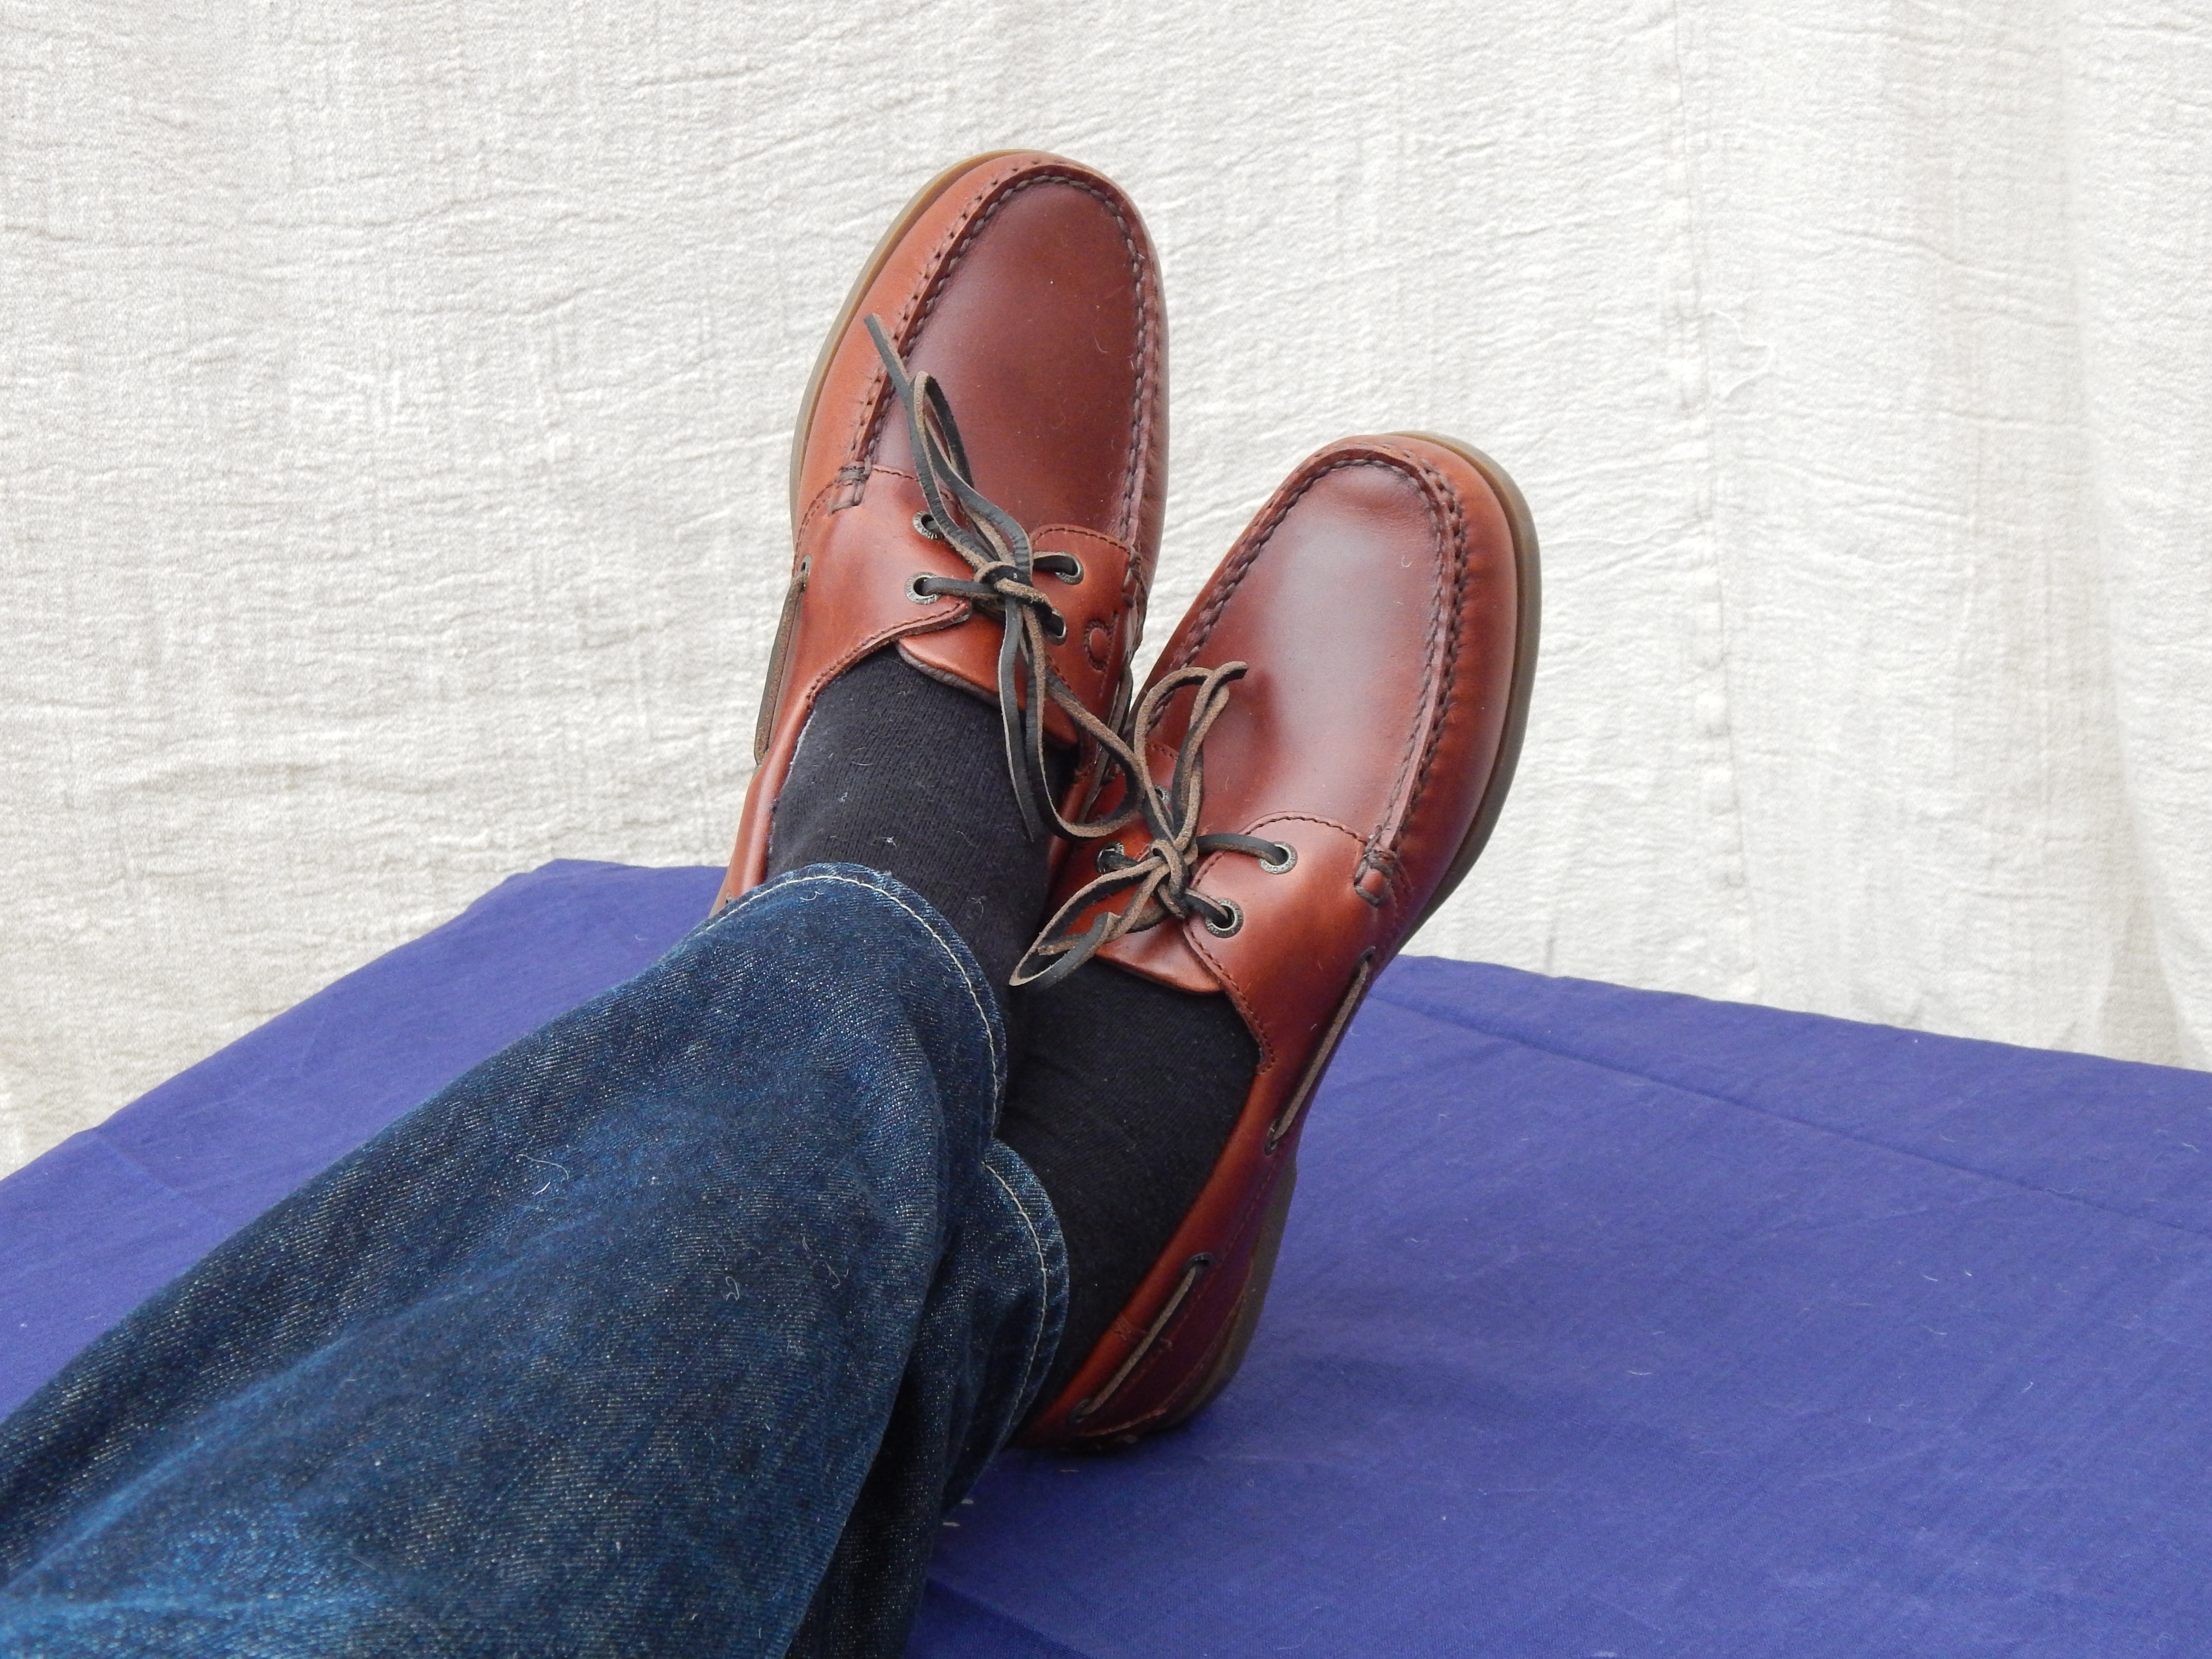 Review; Chatham classic deck shoes